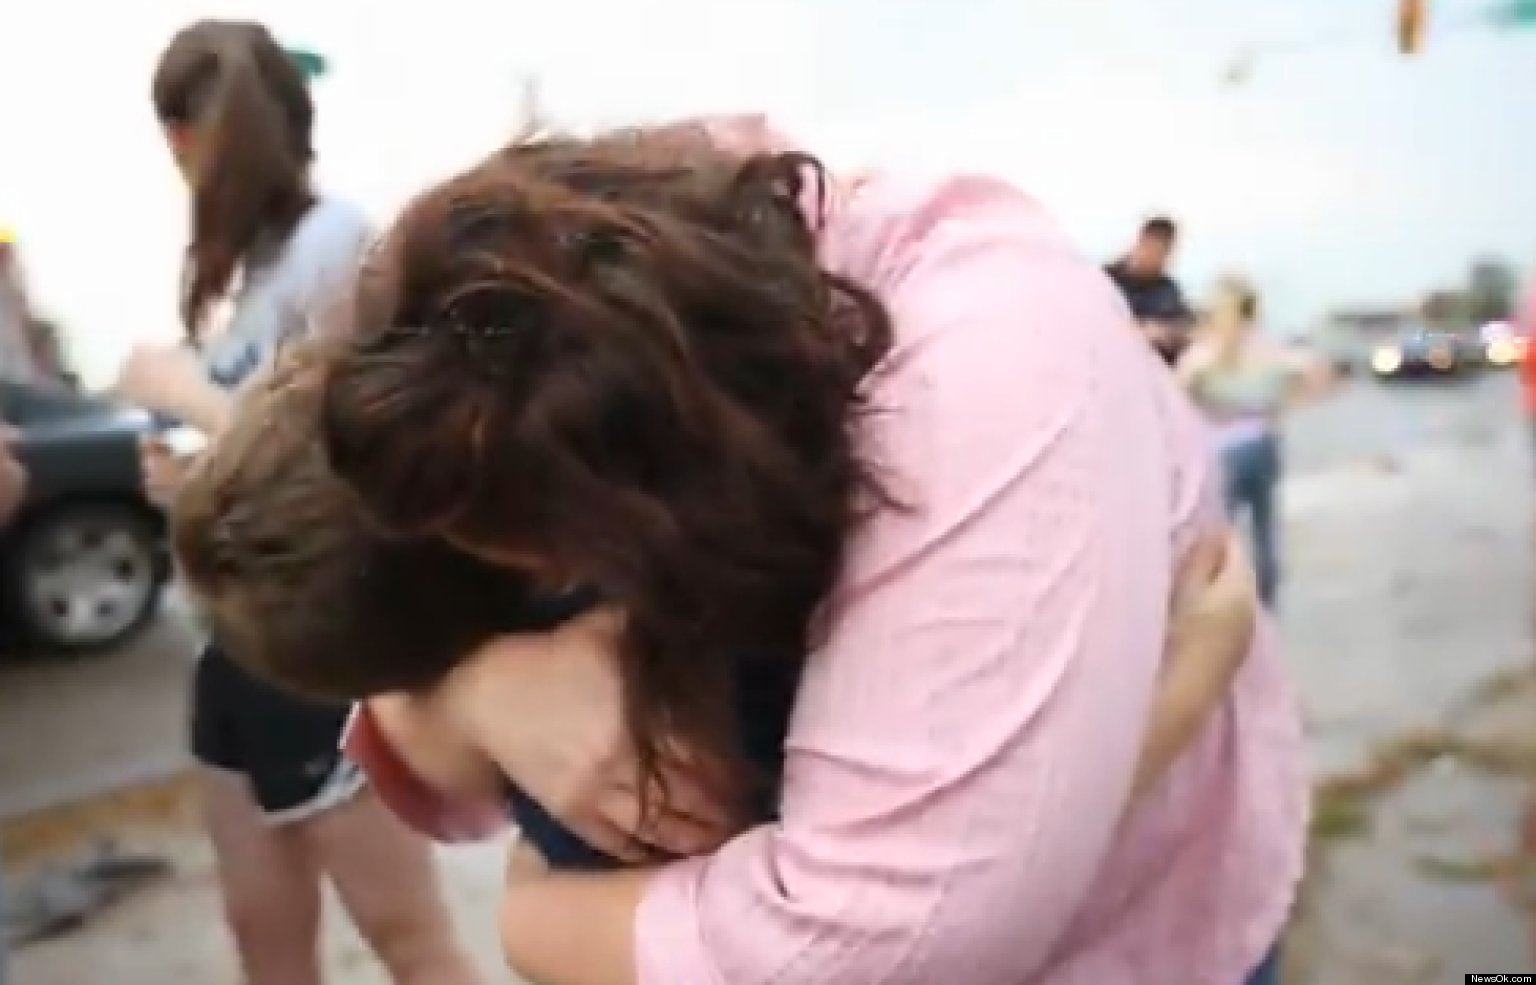 WATCH: Mom's Emotional Reunion With Son After Tornado